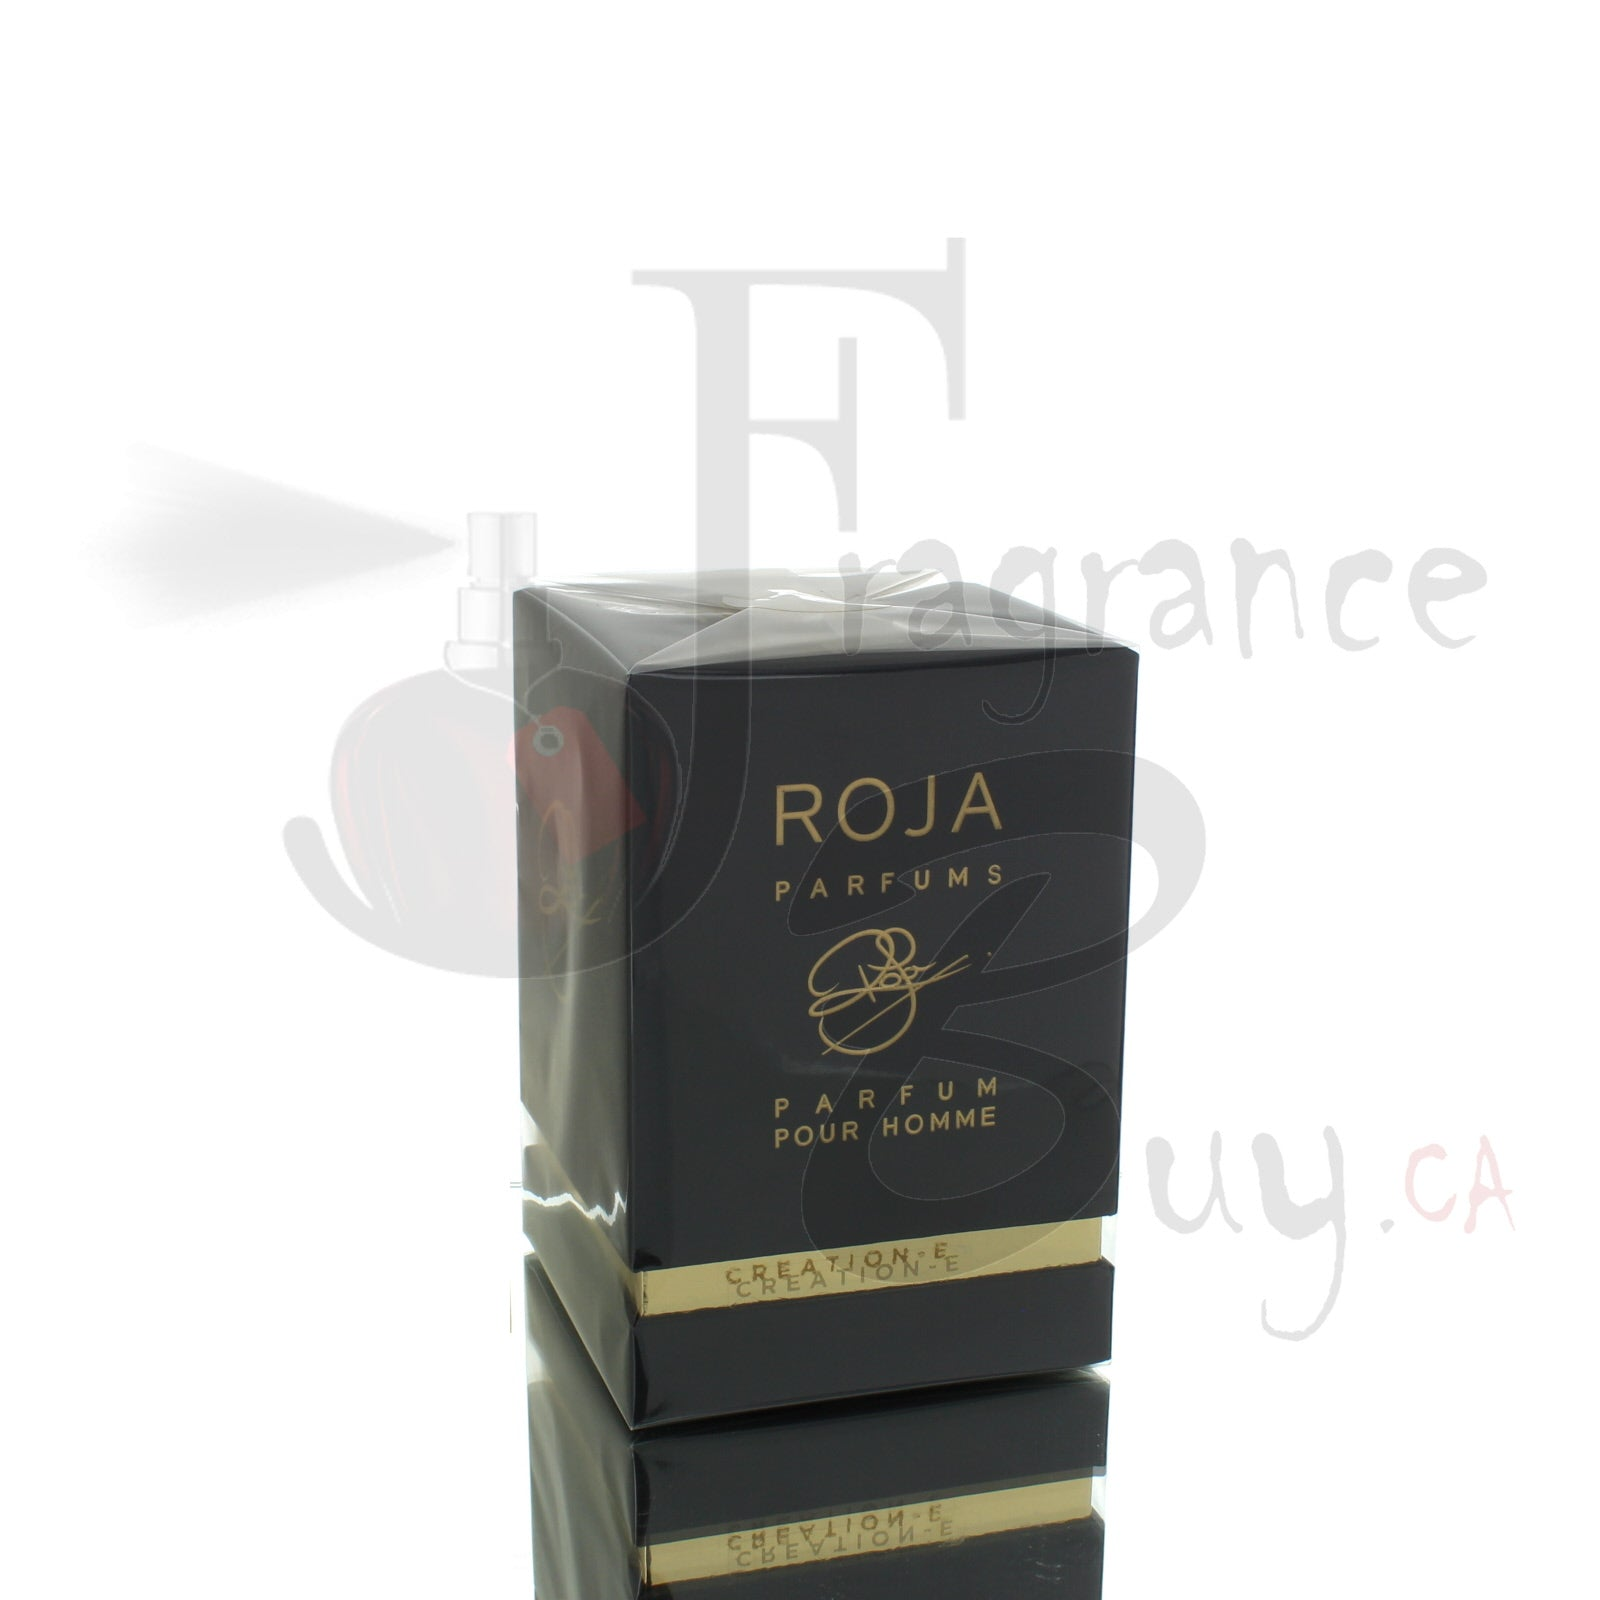 Roja Enigma (Creation-E) Parfum Pour Homme For Man